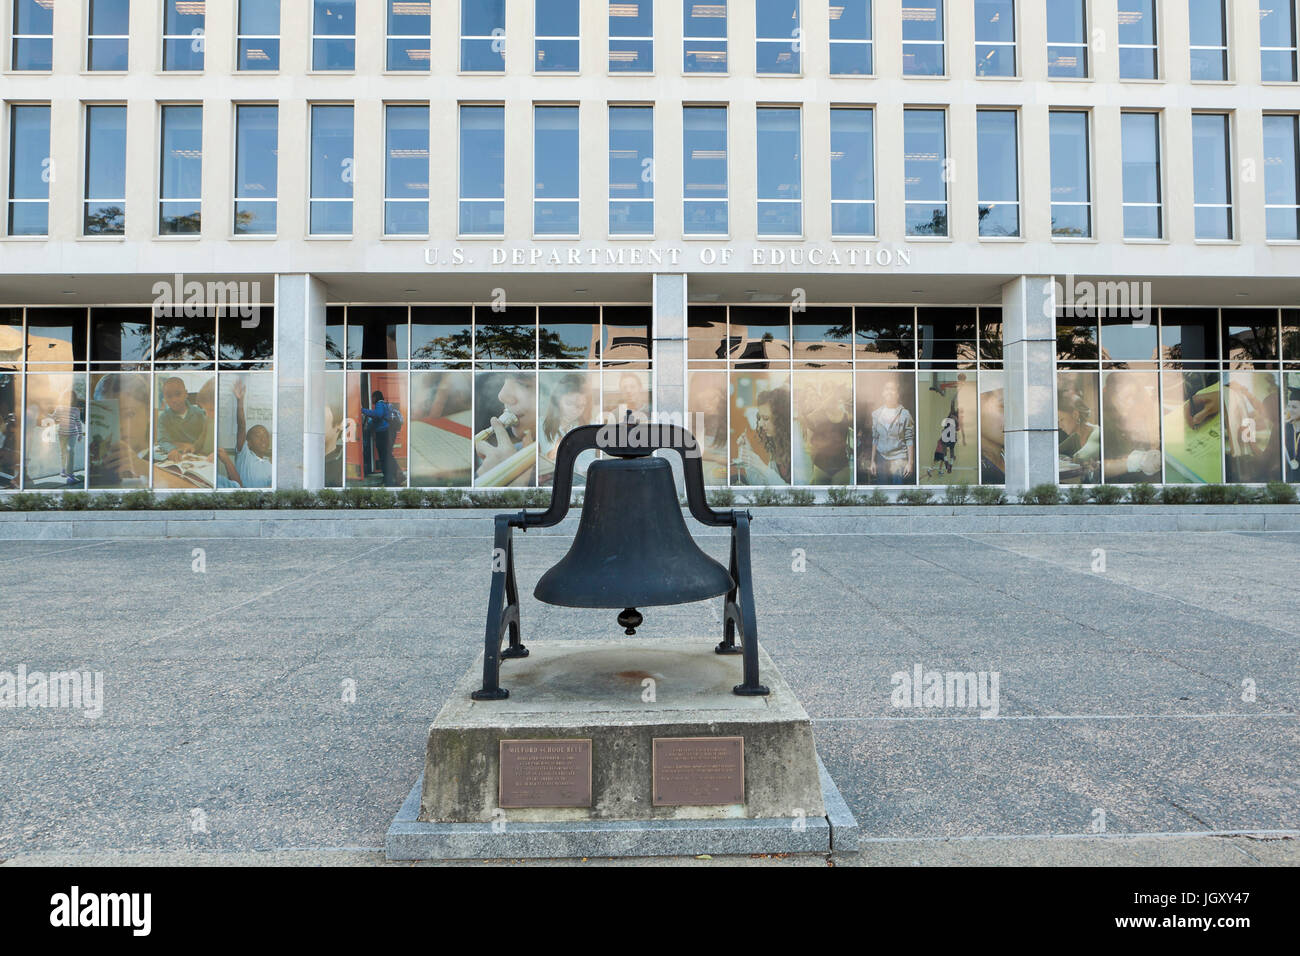 Milford School Bell memorial in front of US Department of Education building - Washington, DC USA - Stock Image